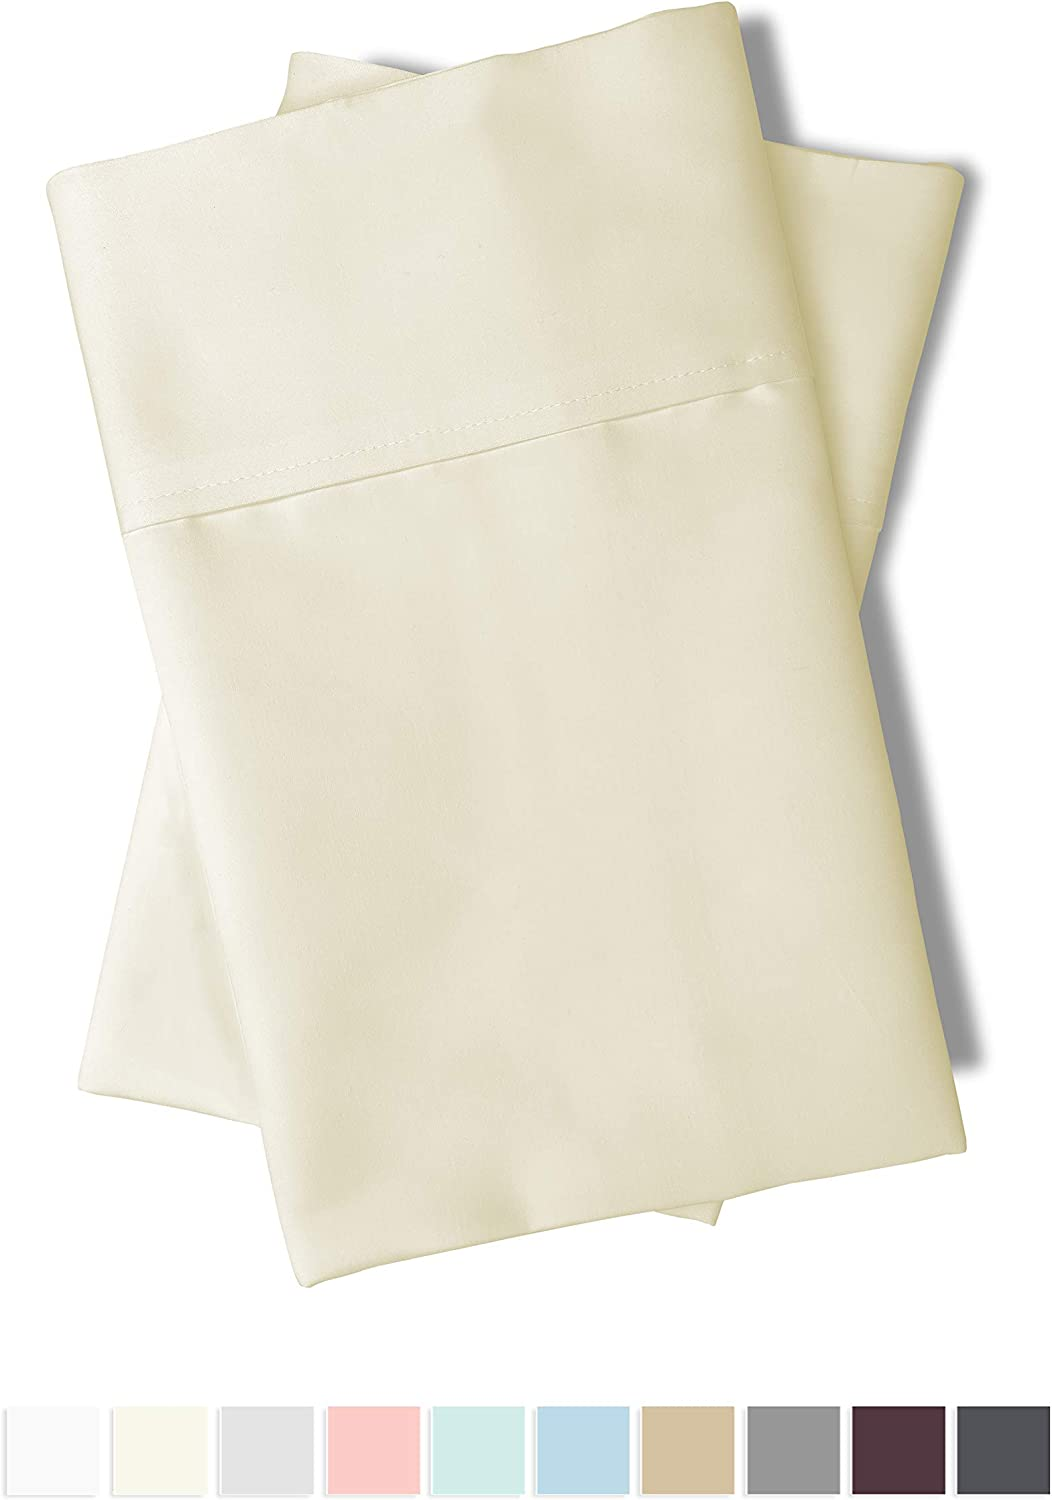 Ivory 100/% Cotton King Size Sheet Set Soft 600 Thread Count Cotton Cream King Sheets Set Deep Pocket Fitted Sheet fit Upto 15 inch 100/% Long Staple Cotton Crisp Sateen King Bed Sheets